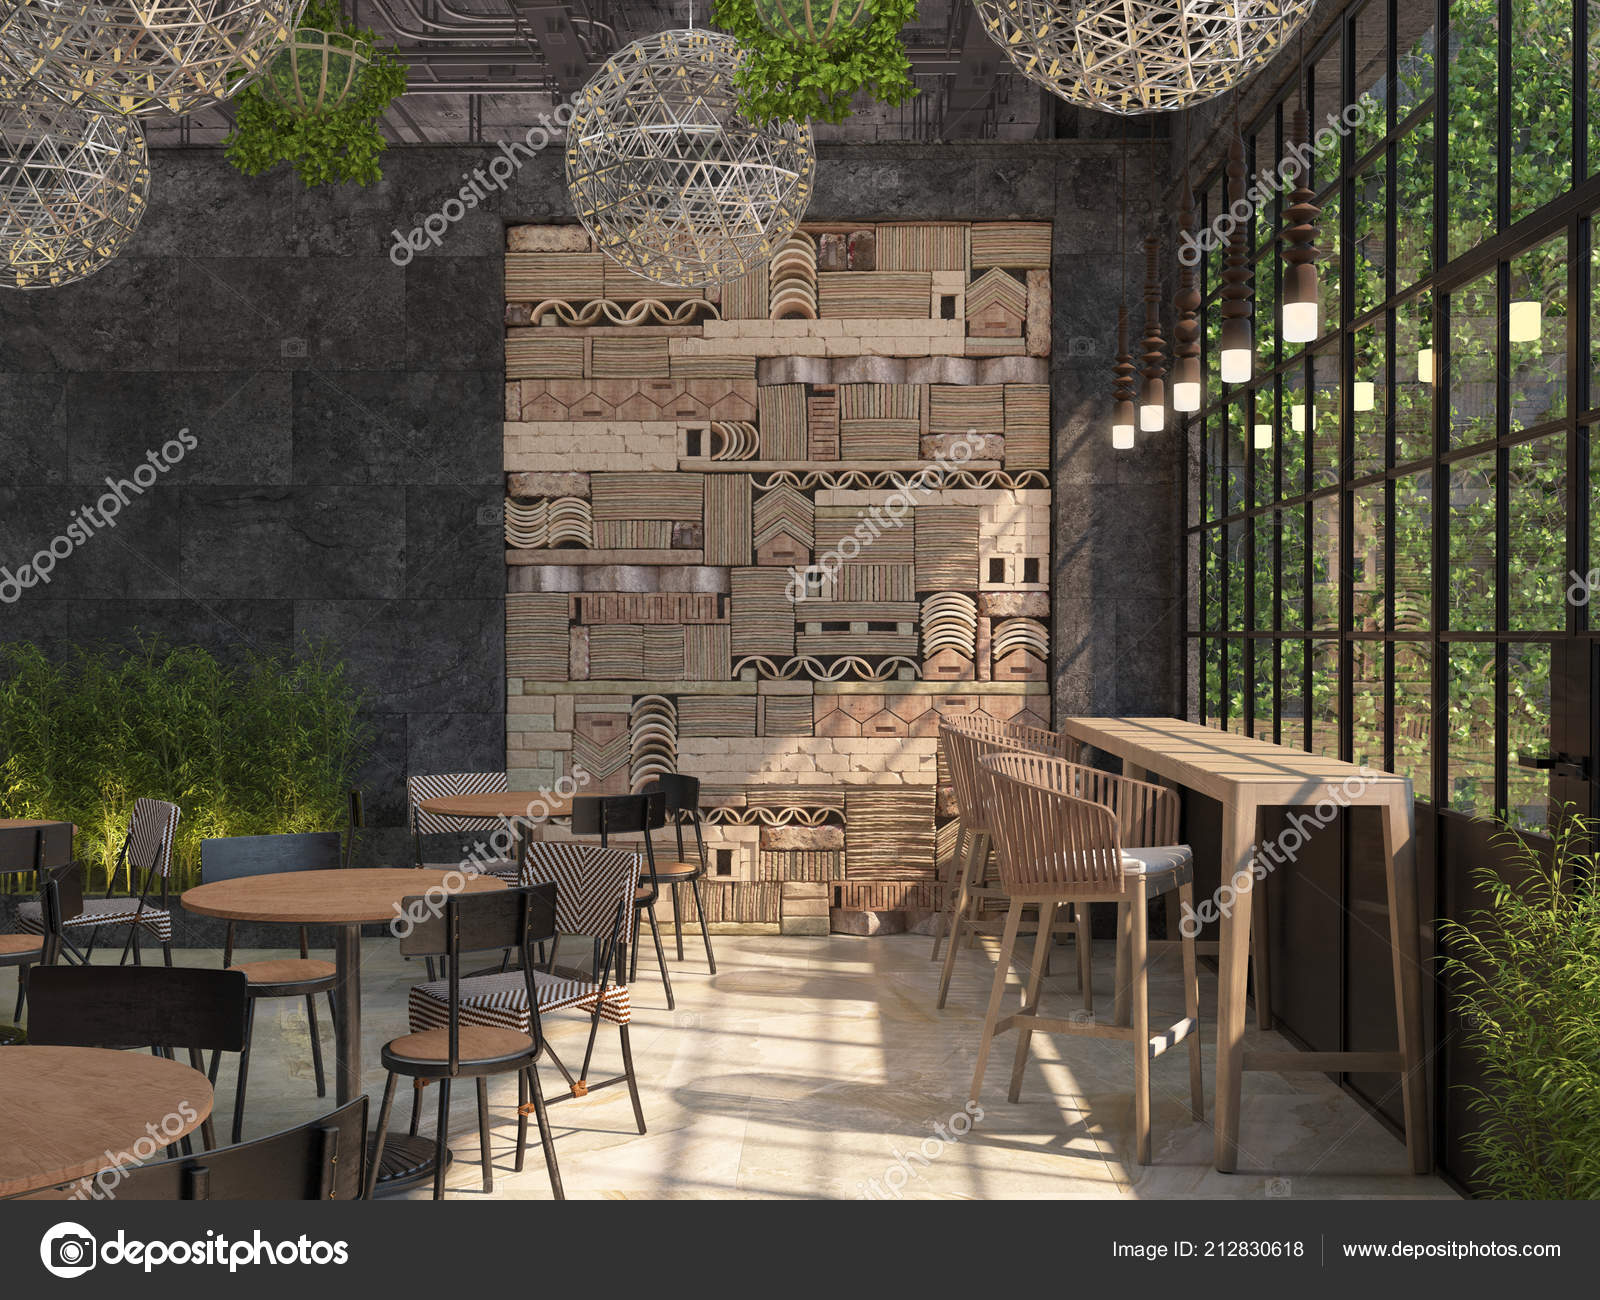 Interior Design Restaurant Loft Style Tables Chairs Background Black Wall Stock Photo C Jud G 212830618